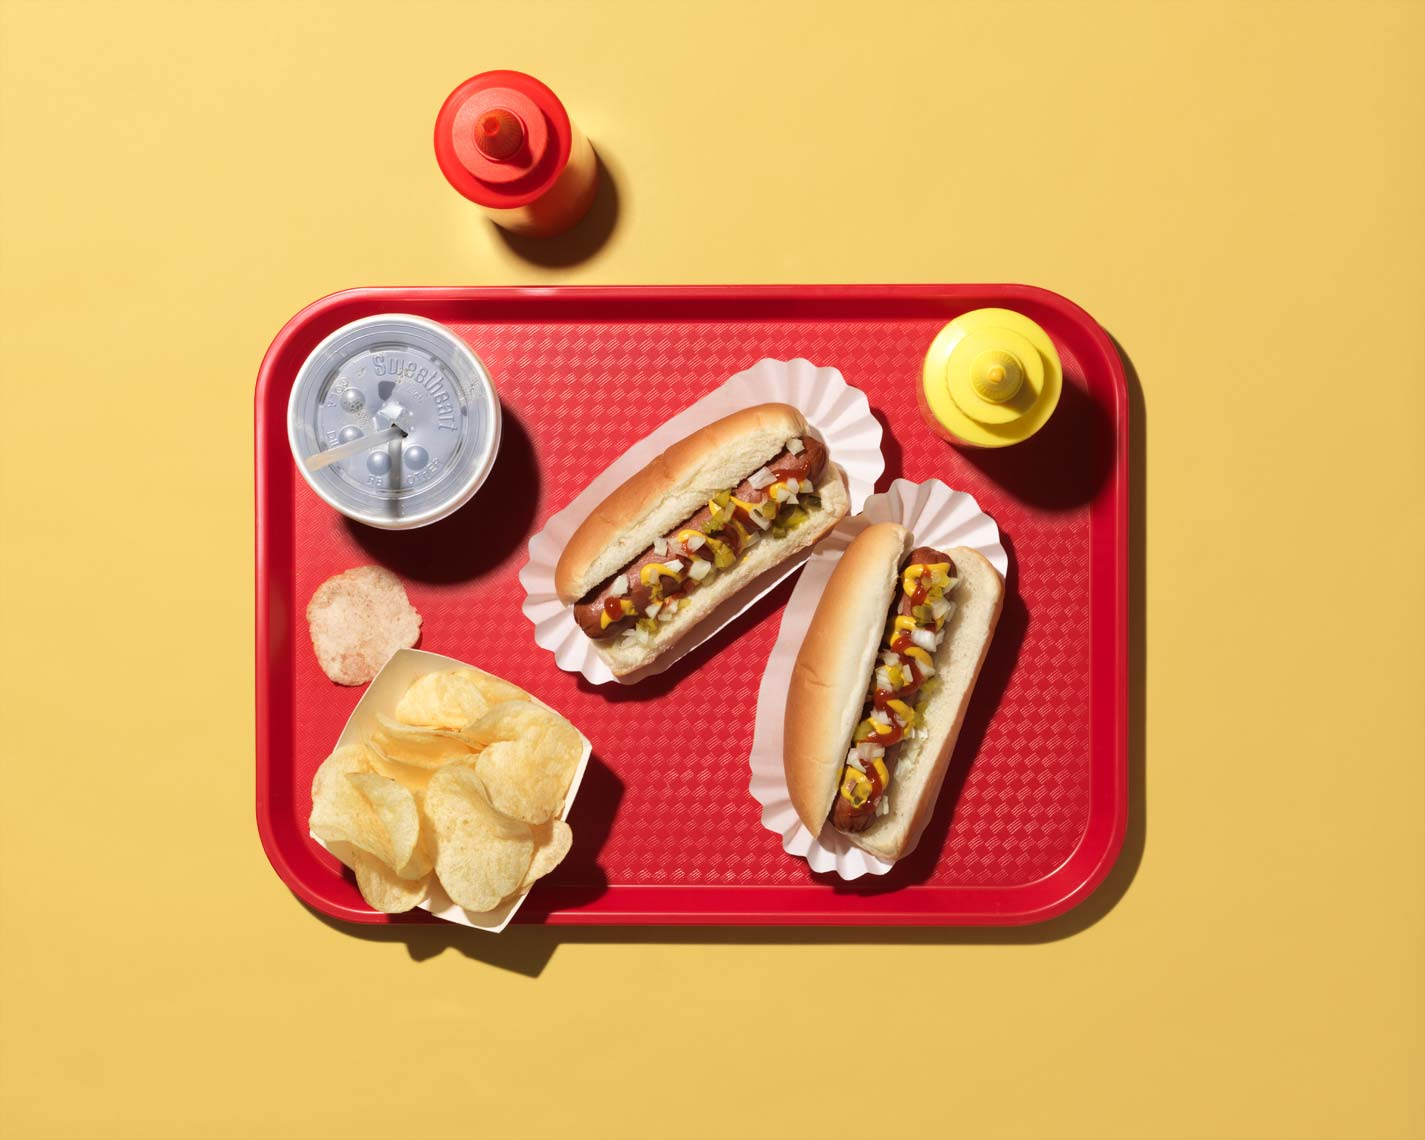 hot dog pop and chips on a red tray